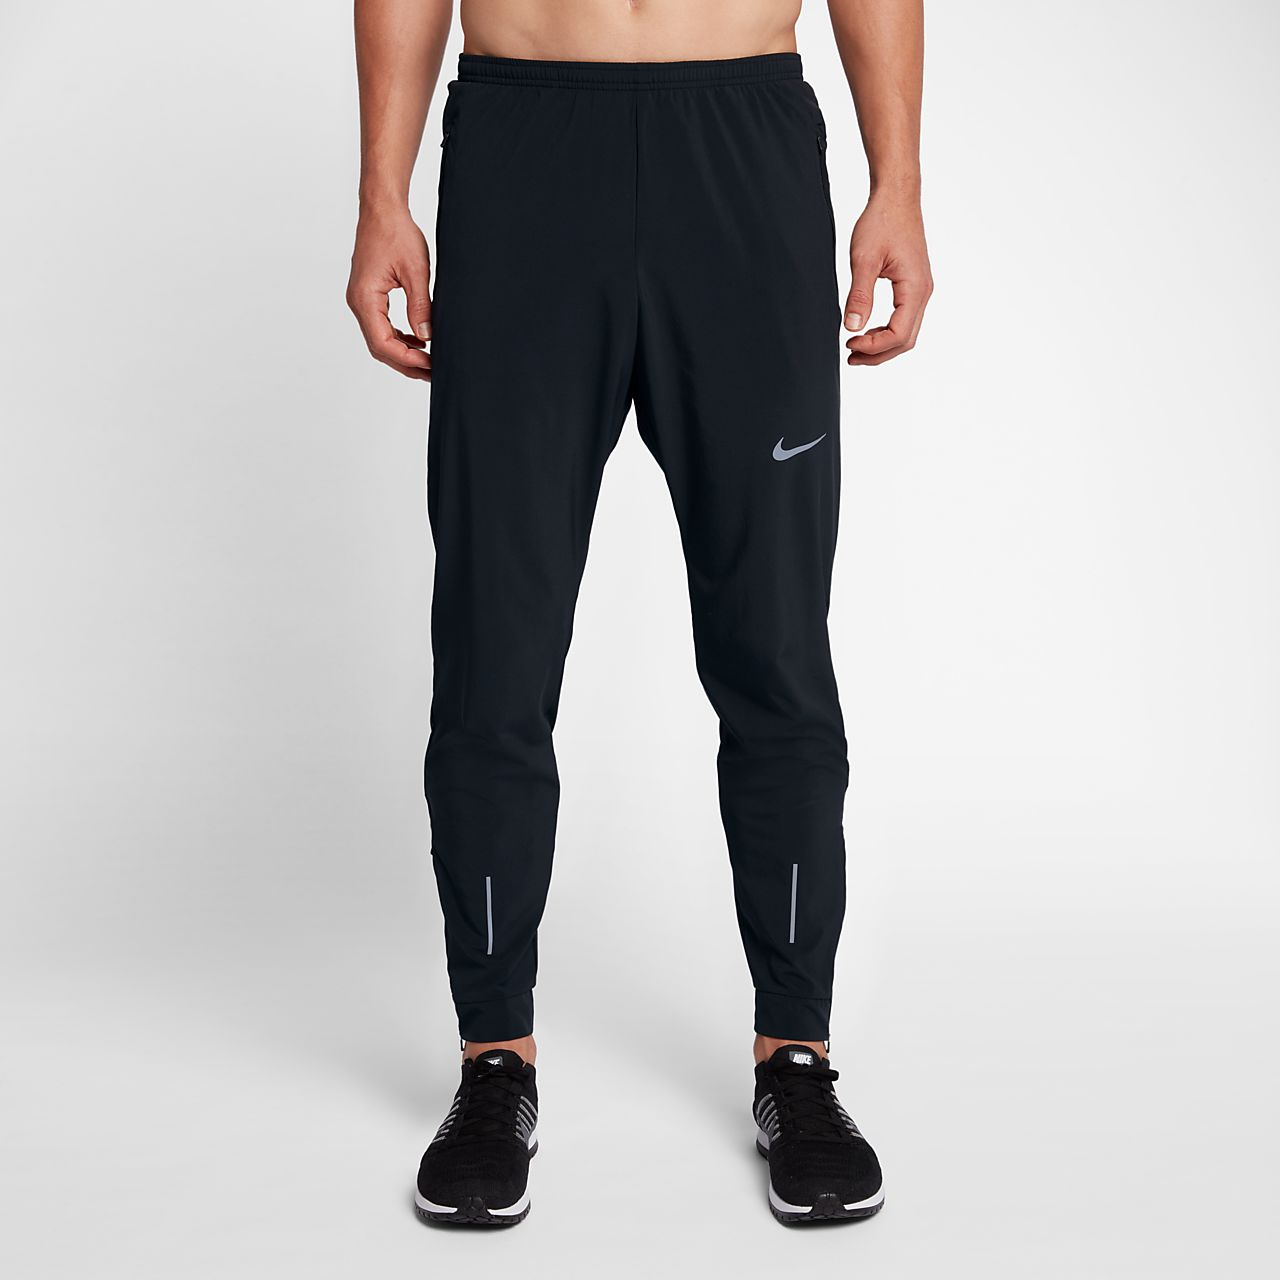 The pants and tights below are proof of this. Tracksmith's Solomon pants go on and off with ease. Oiselle's O-Mazing tights feature a pocket that holds more than would a running belt and pants. On's Running Pants are uniquely breathable. Under Armour's new Windstopper tights are aptly named.